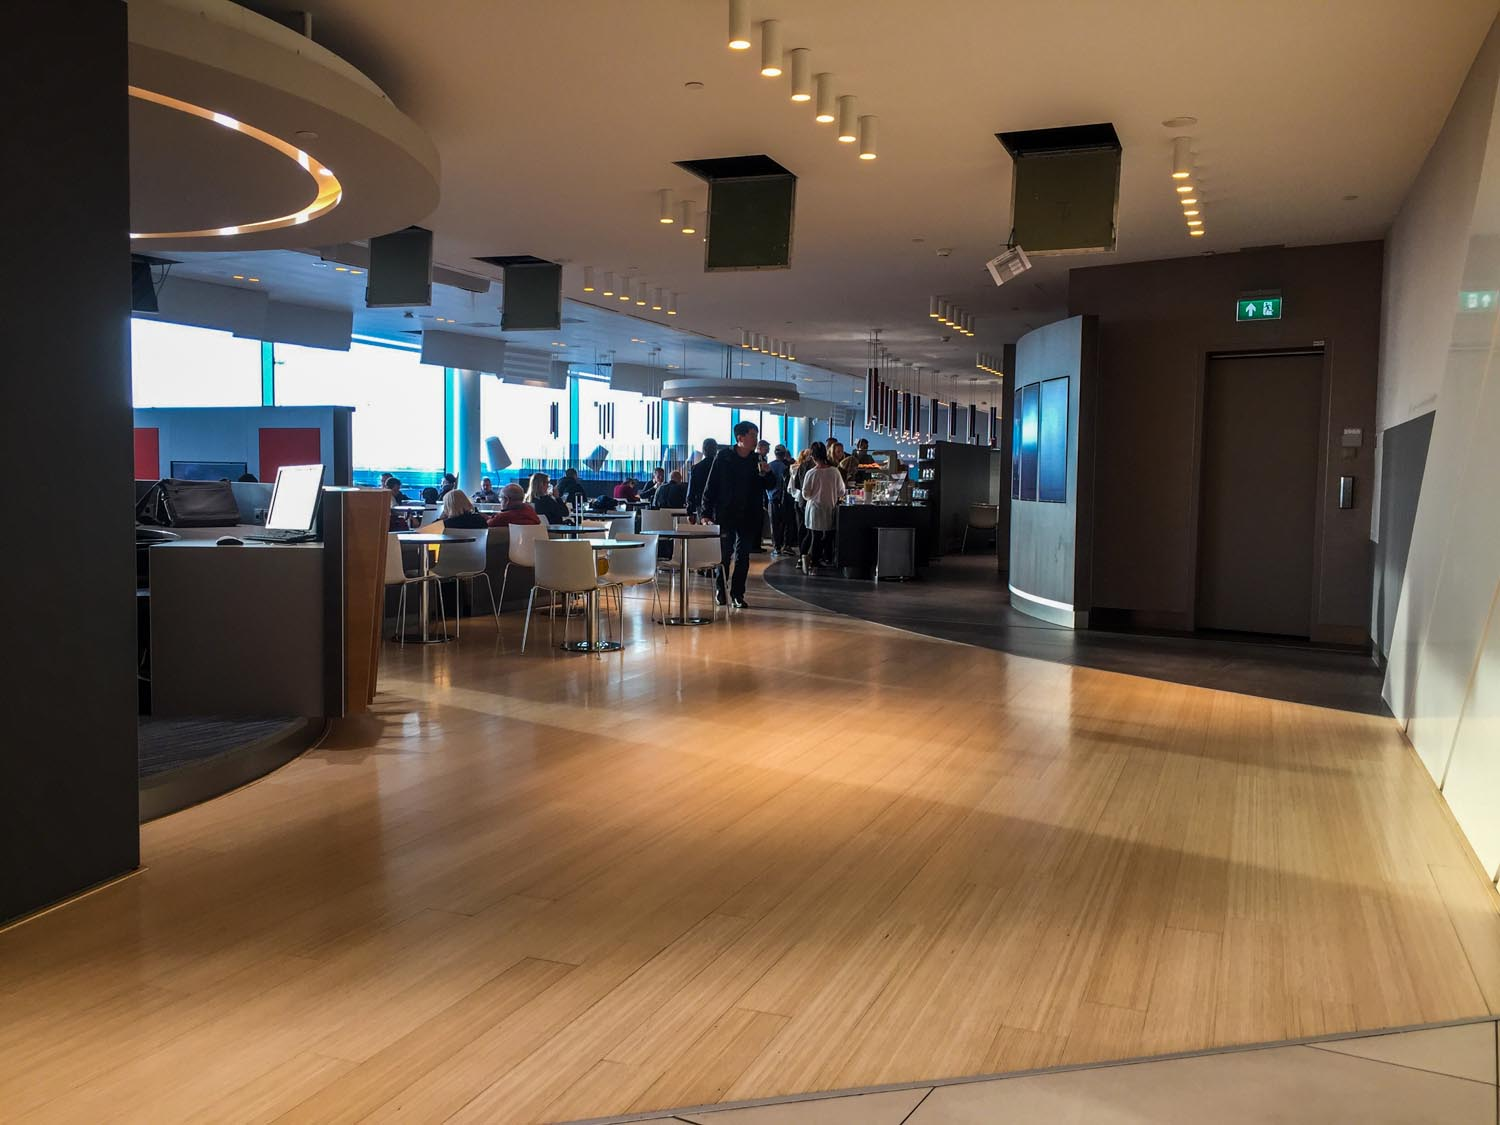 The layout of Aspire Lounge 41 in Amsterdam Terminal 3 is long and narrow